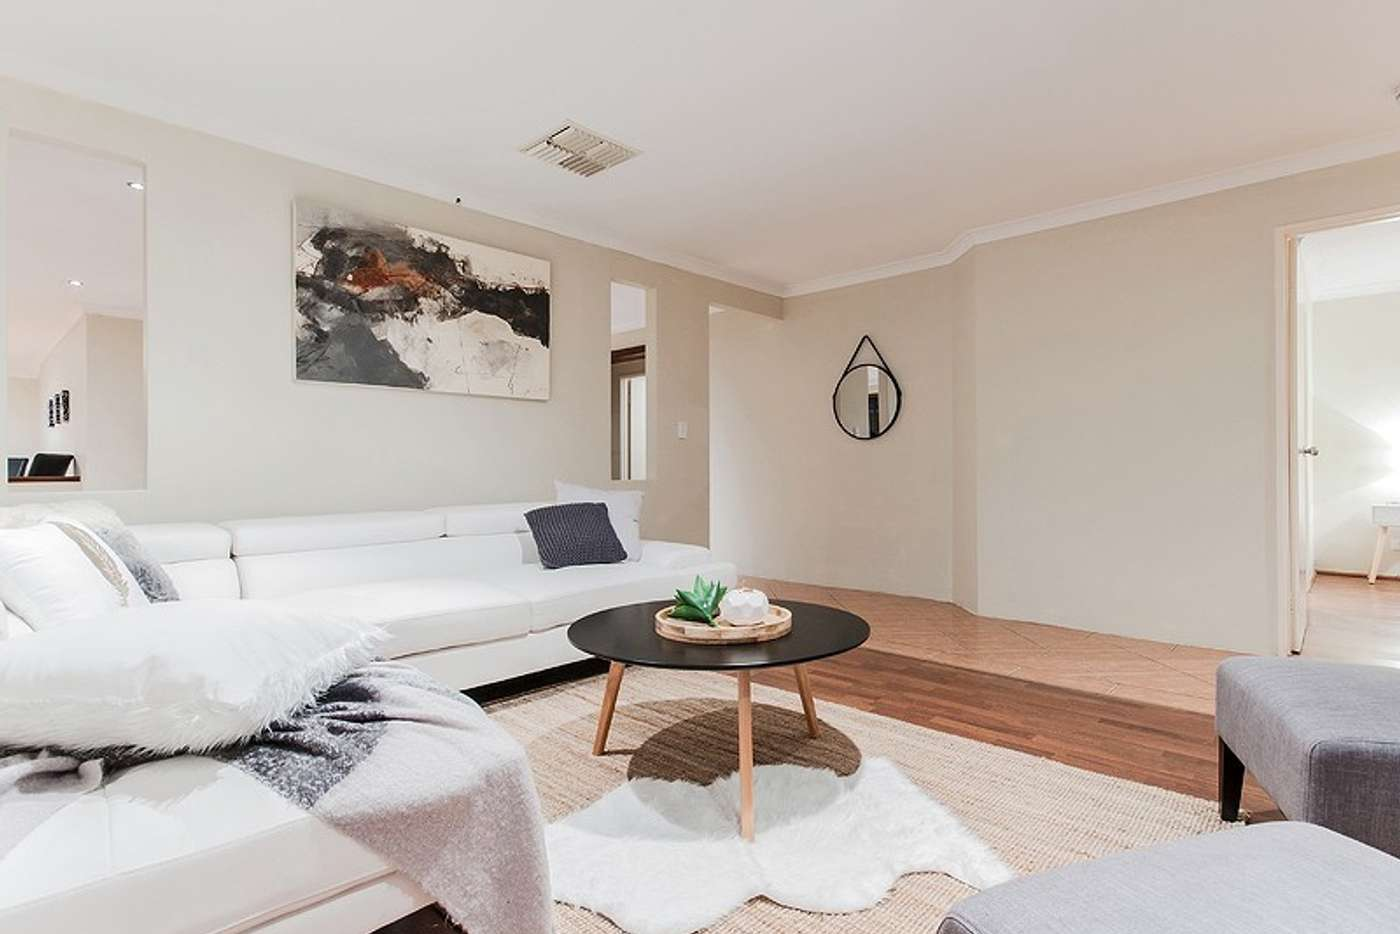 Main view of Homely house listing, 16 Murphy Crescent, Bertram WA 6167